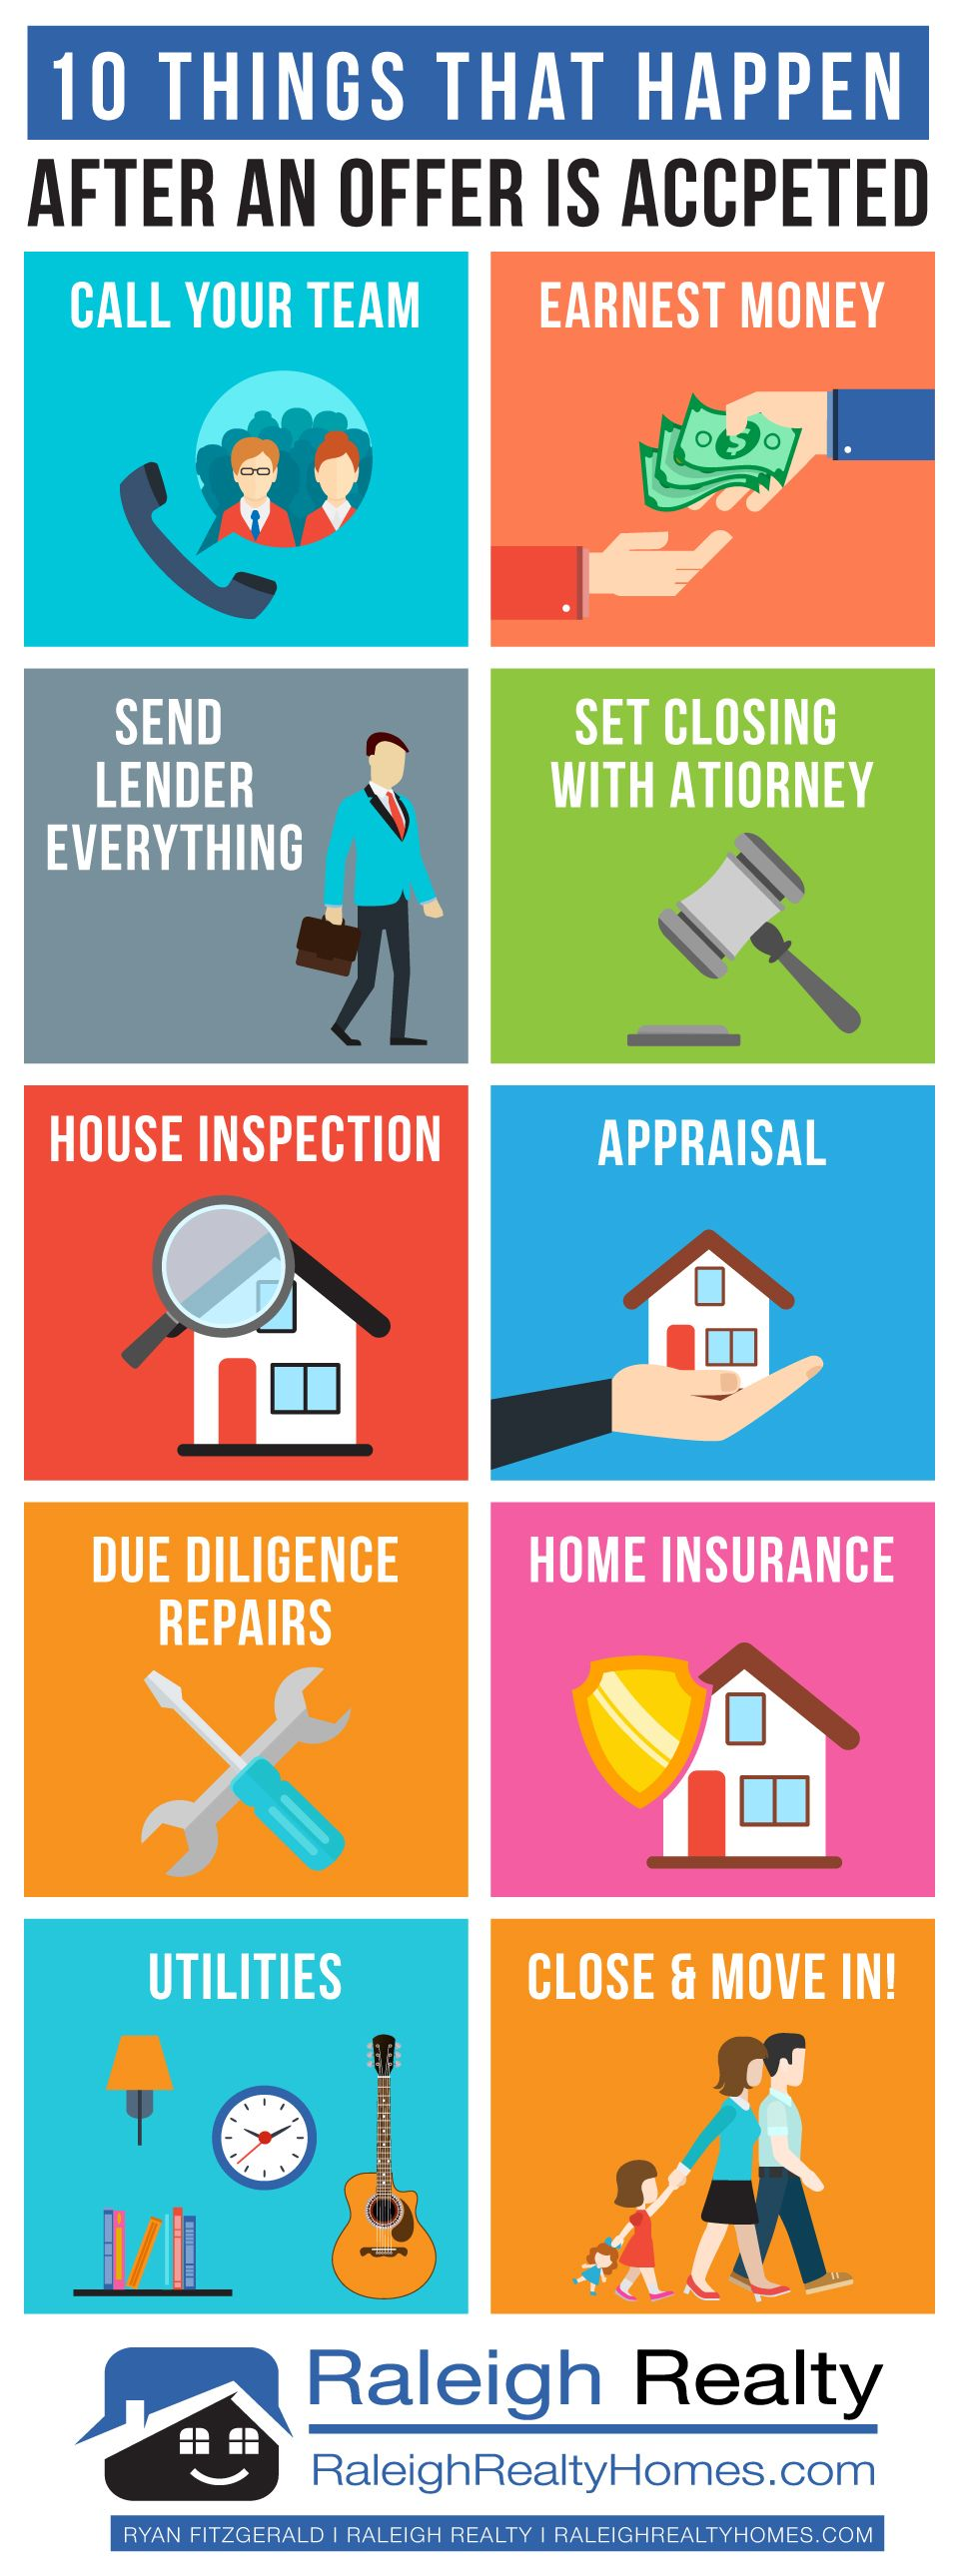 10 Things That Happen After Offer Accepted On A Home Real Estate Real Estate Advice Mortgage Marketing